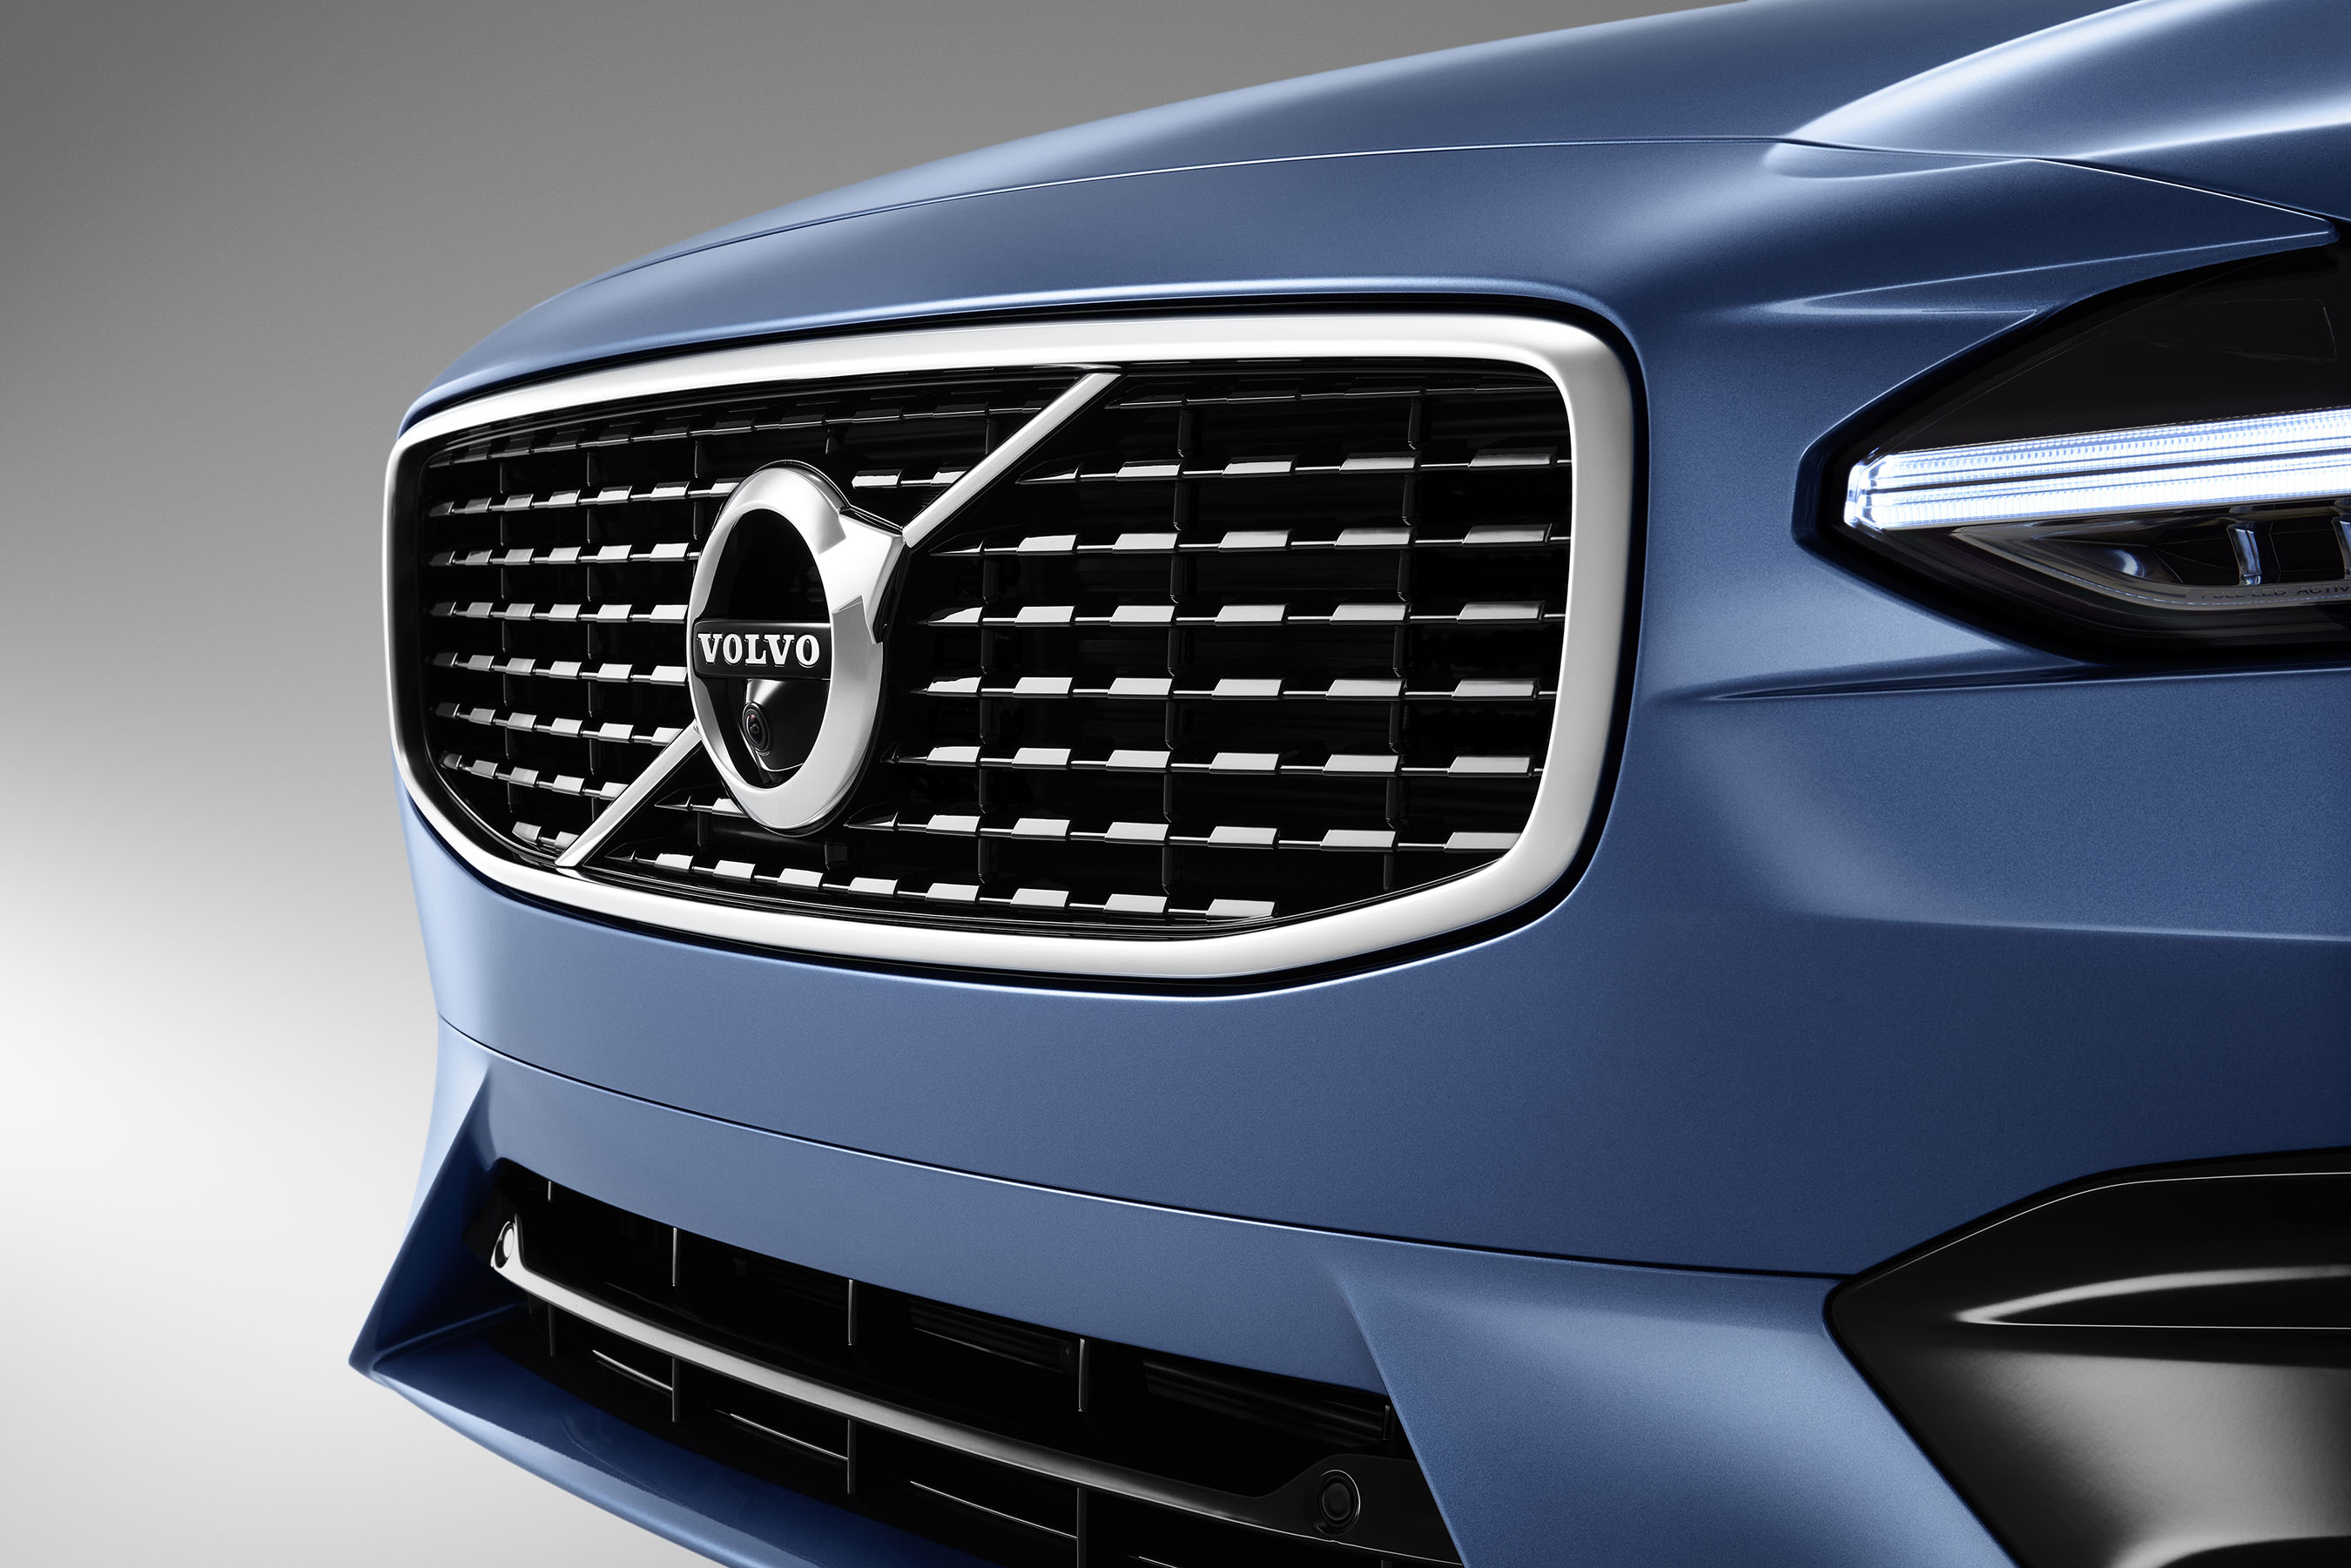 Design By: Volvo Cars Reveals Sporty S90 & V90 R-Design Models